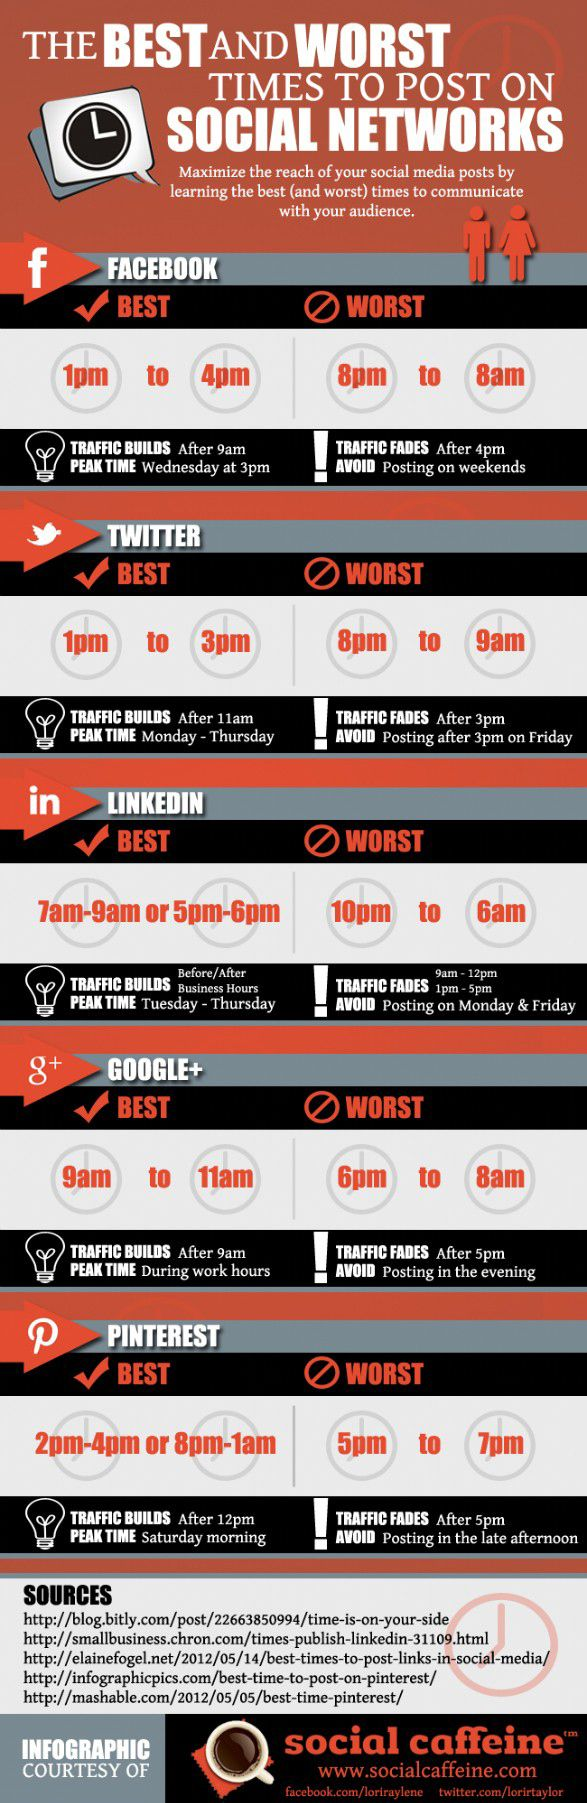 Infographic: The Best Times to Post on Social Media | Mobile Marketing Watch #socialmedia #infographic | Repinned by @topsocialmedia